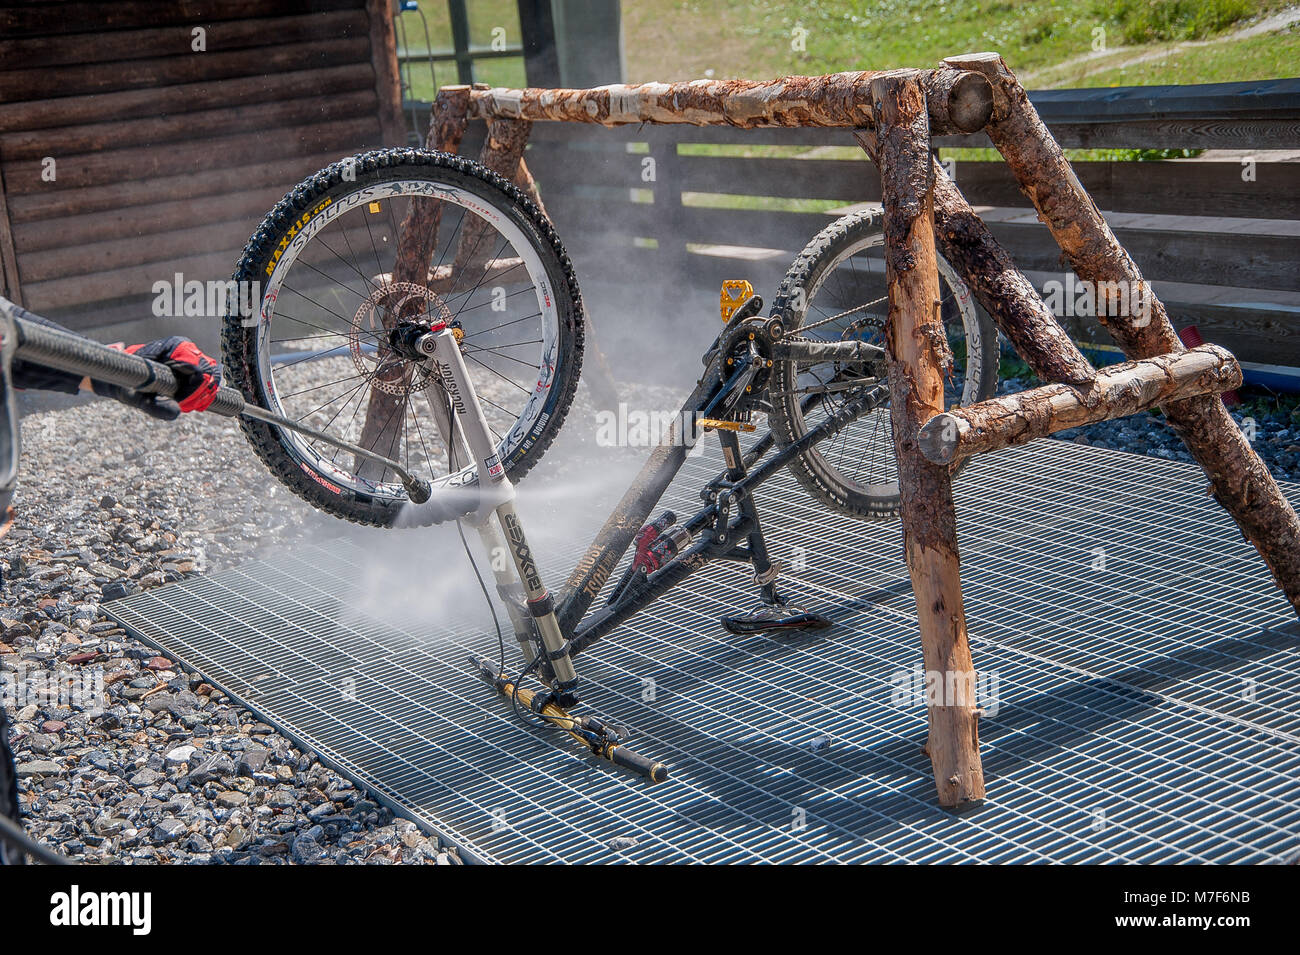 27 luglio 2015 Livigno italy : cleaning after bike ride through the ...